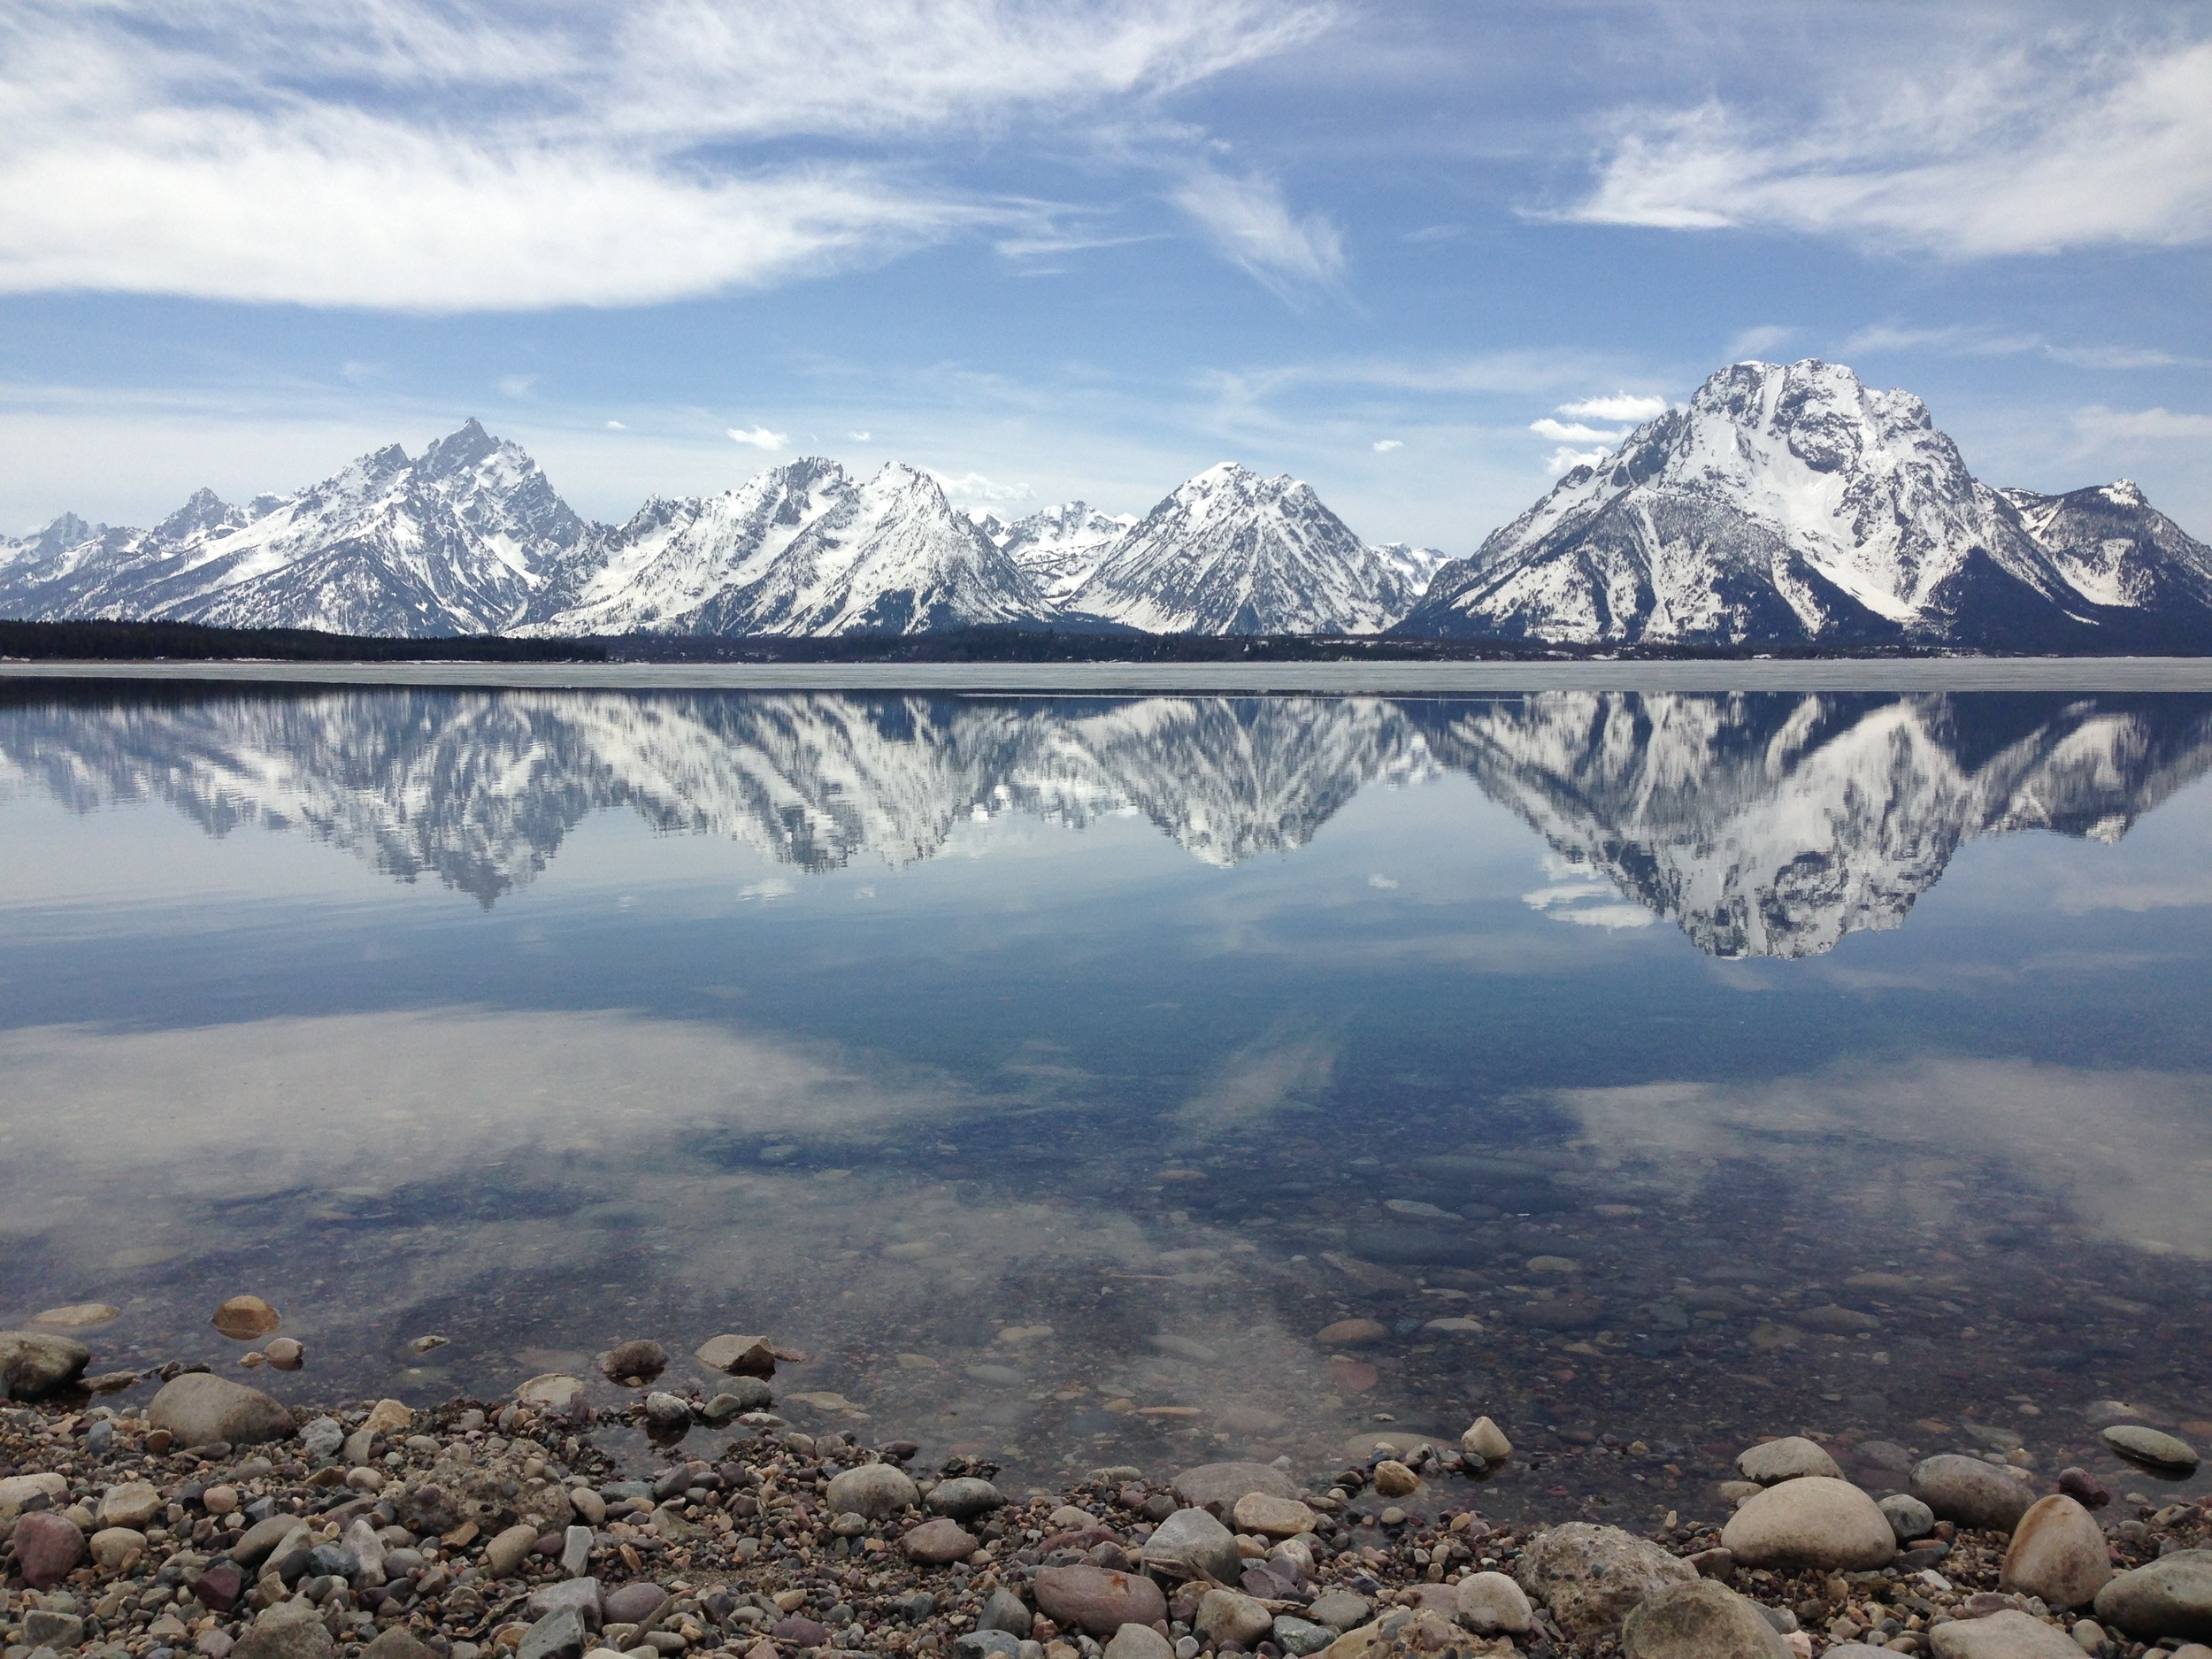 My favorite peak, Mount Moran, reflecting on Jackson Lake in Grand Teton